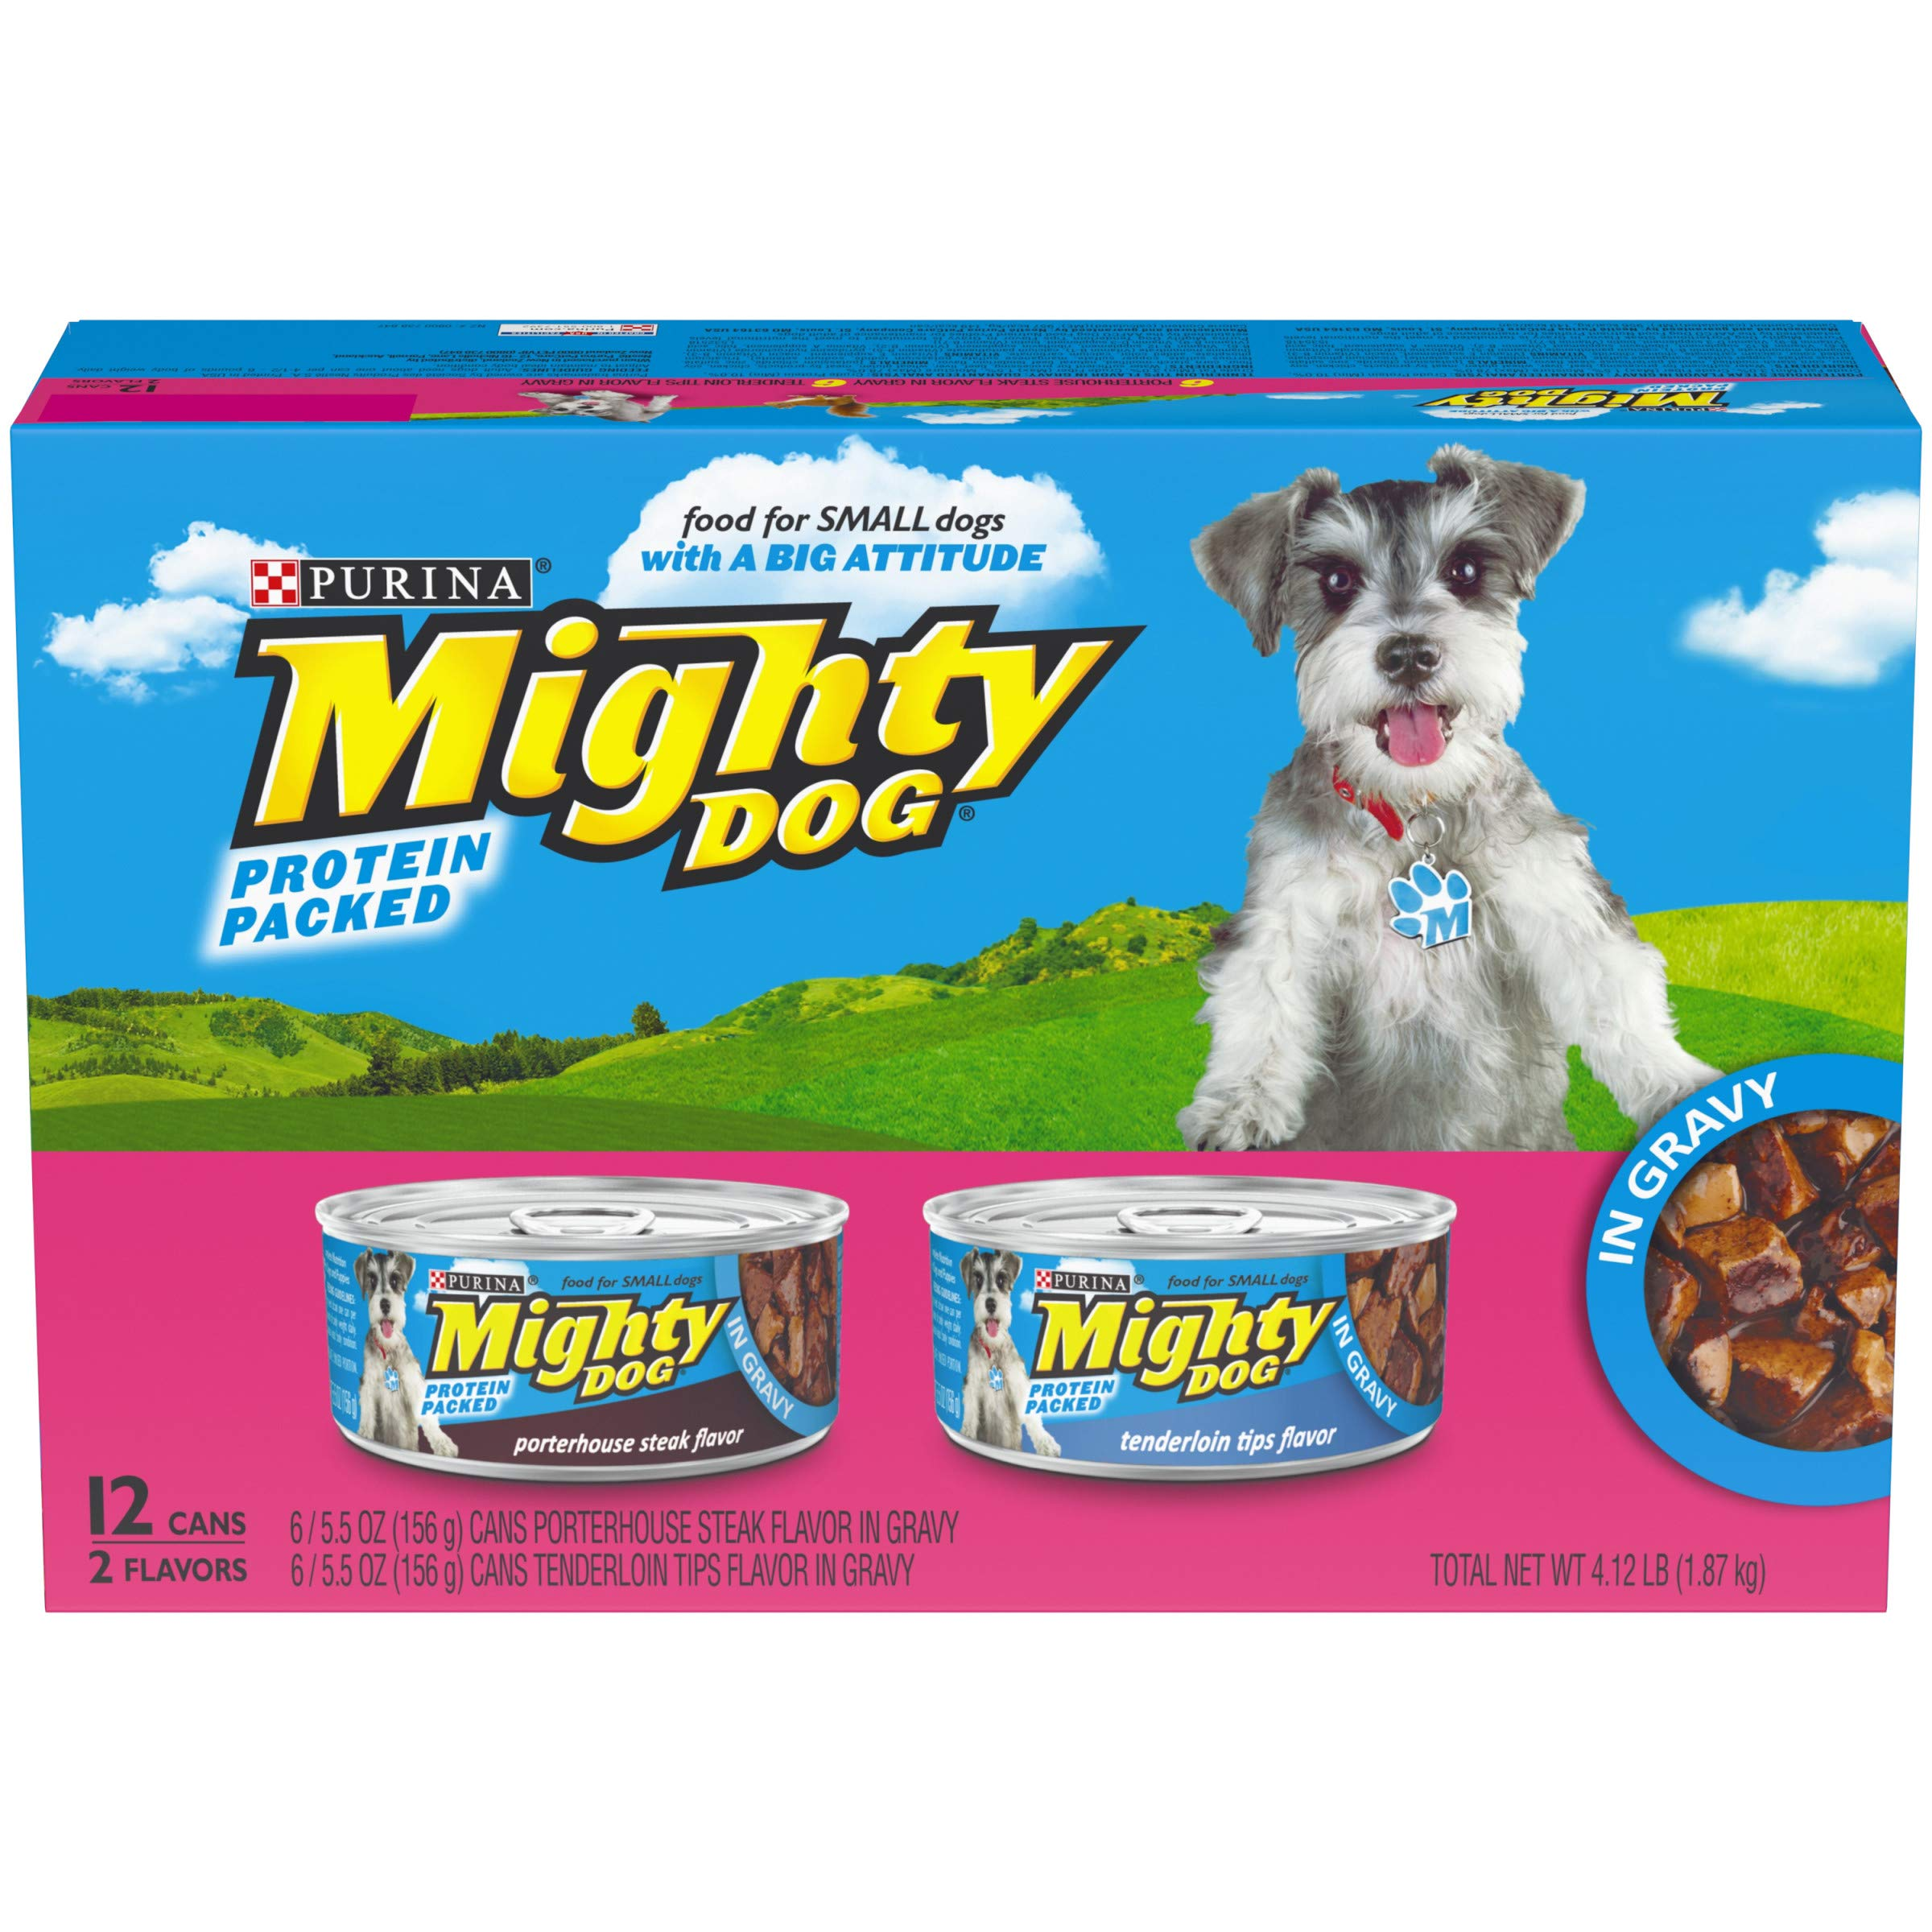 Purina Mighty Dog Small Breed Gravy Wet Dog Food Variety Pack, Porterhouse Steak & Tenderloin Tips Flavors - (2 Packs of 12) 5.5 oz. Cans by PURINA Mighty Dog